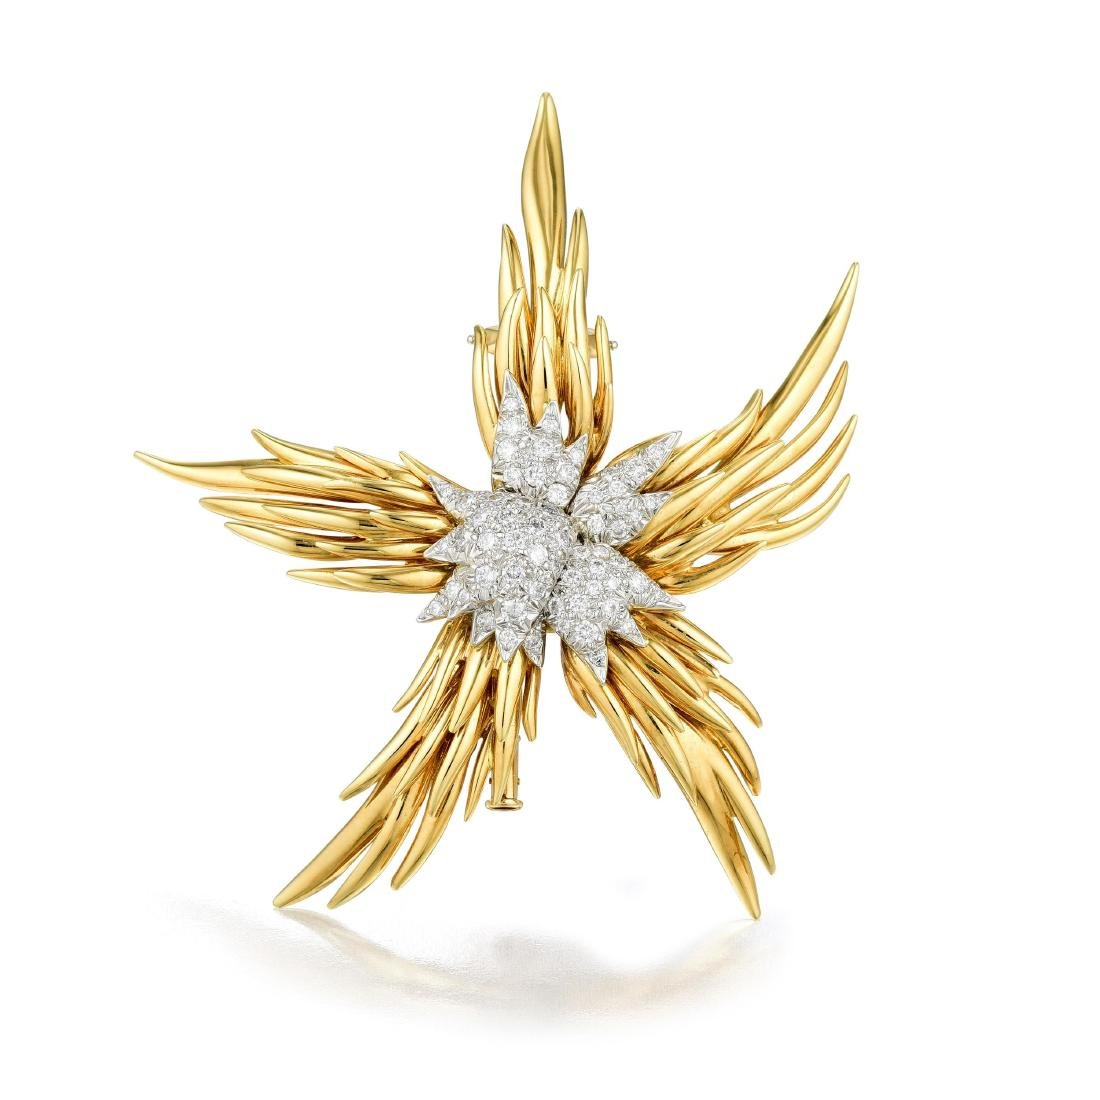 Jean Schlumberger for Tiffany & Co. 'Flame' Diamond,